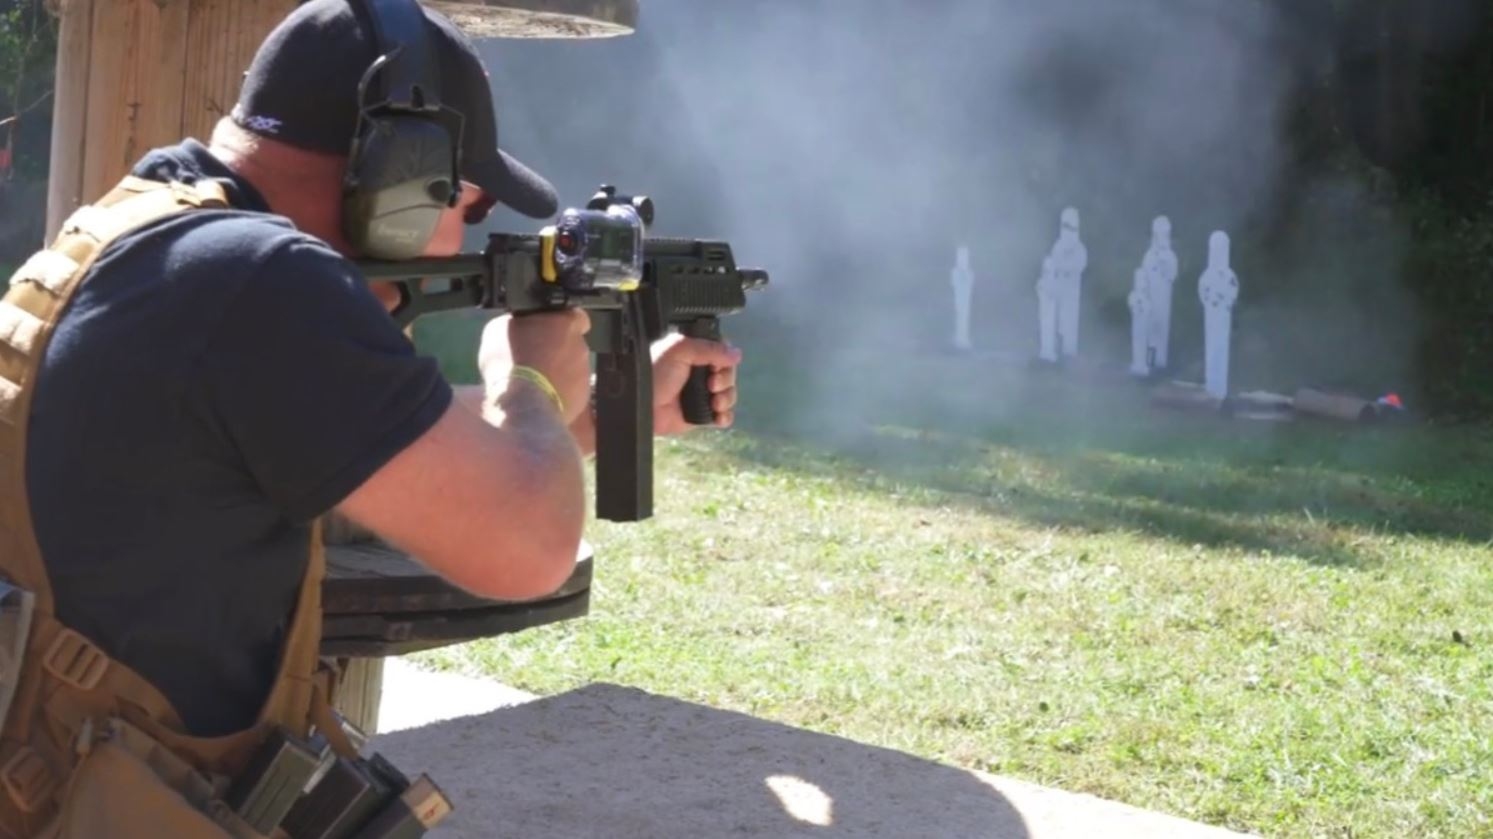 This Year is The End of the Knob Creek Machine Gun Shoot